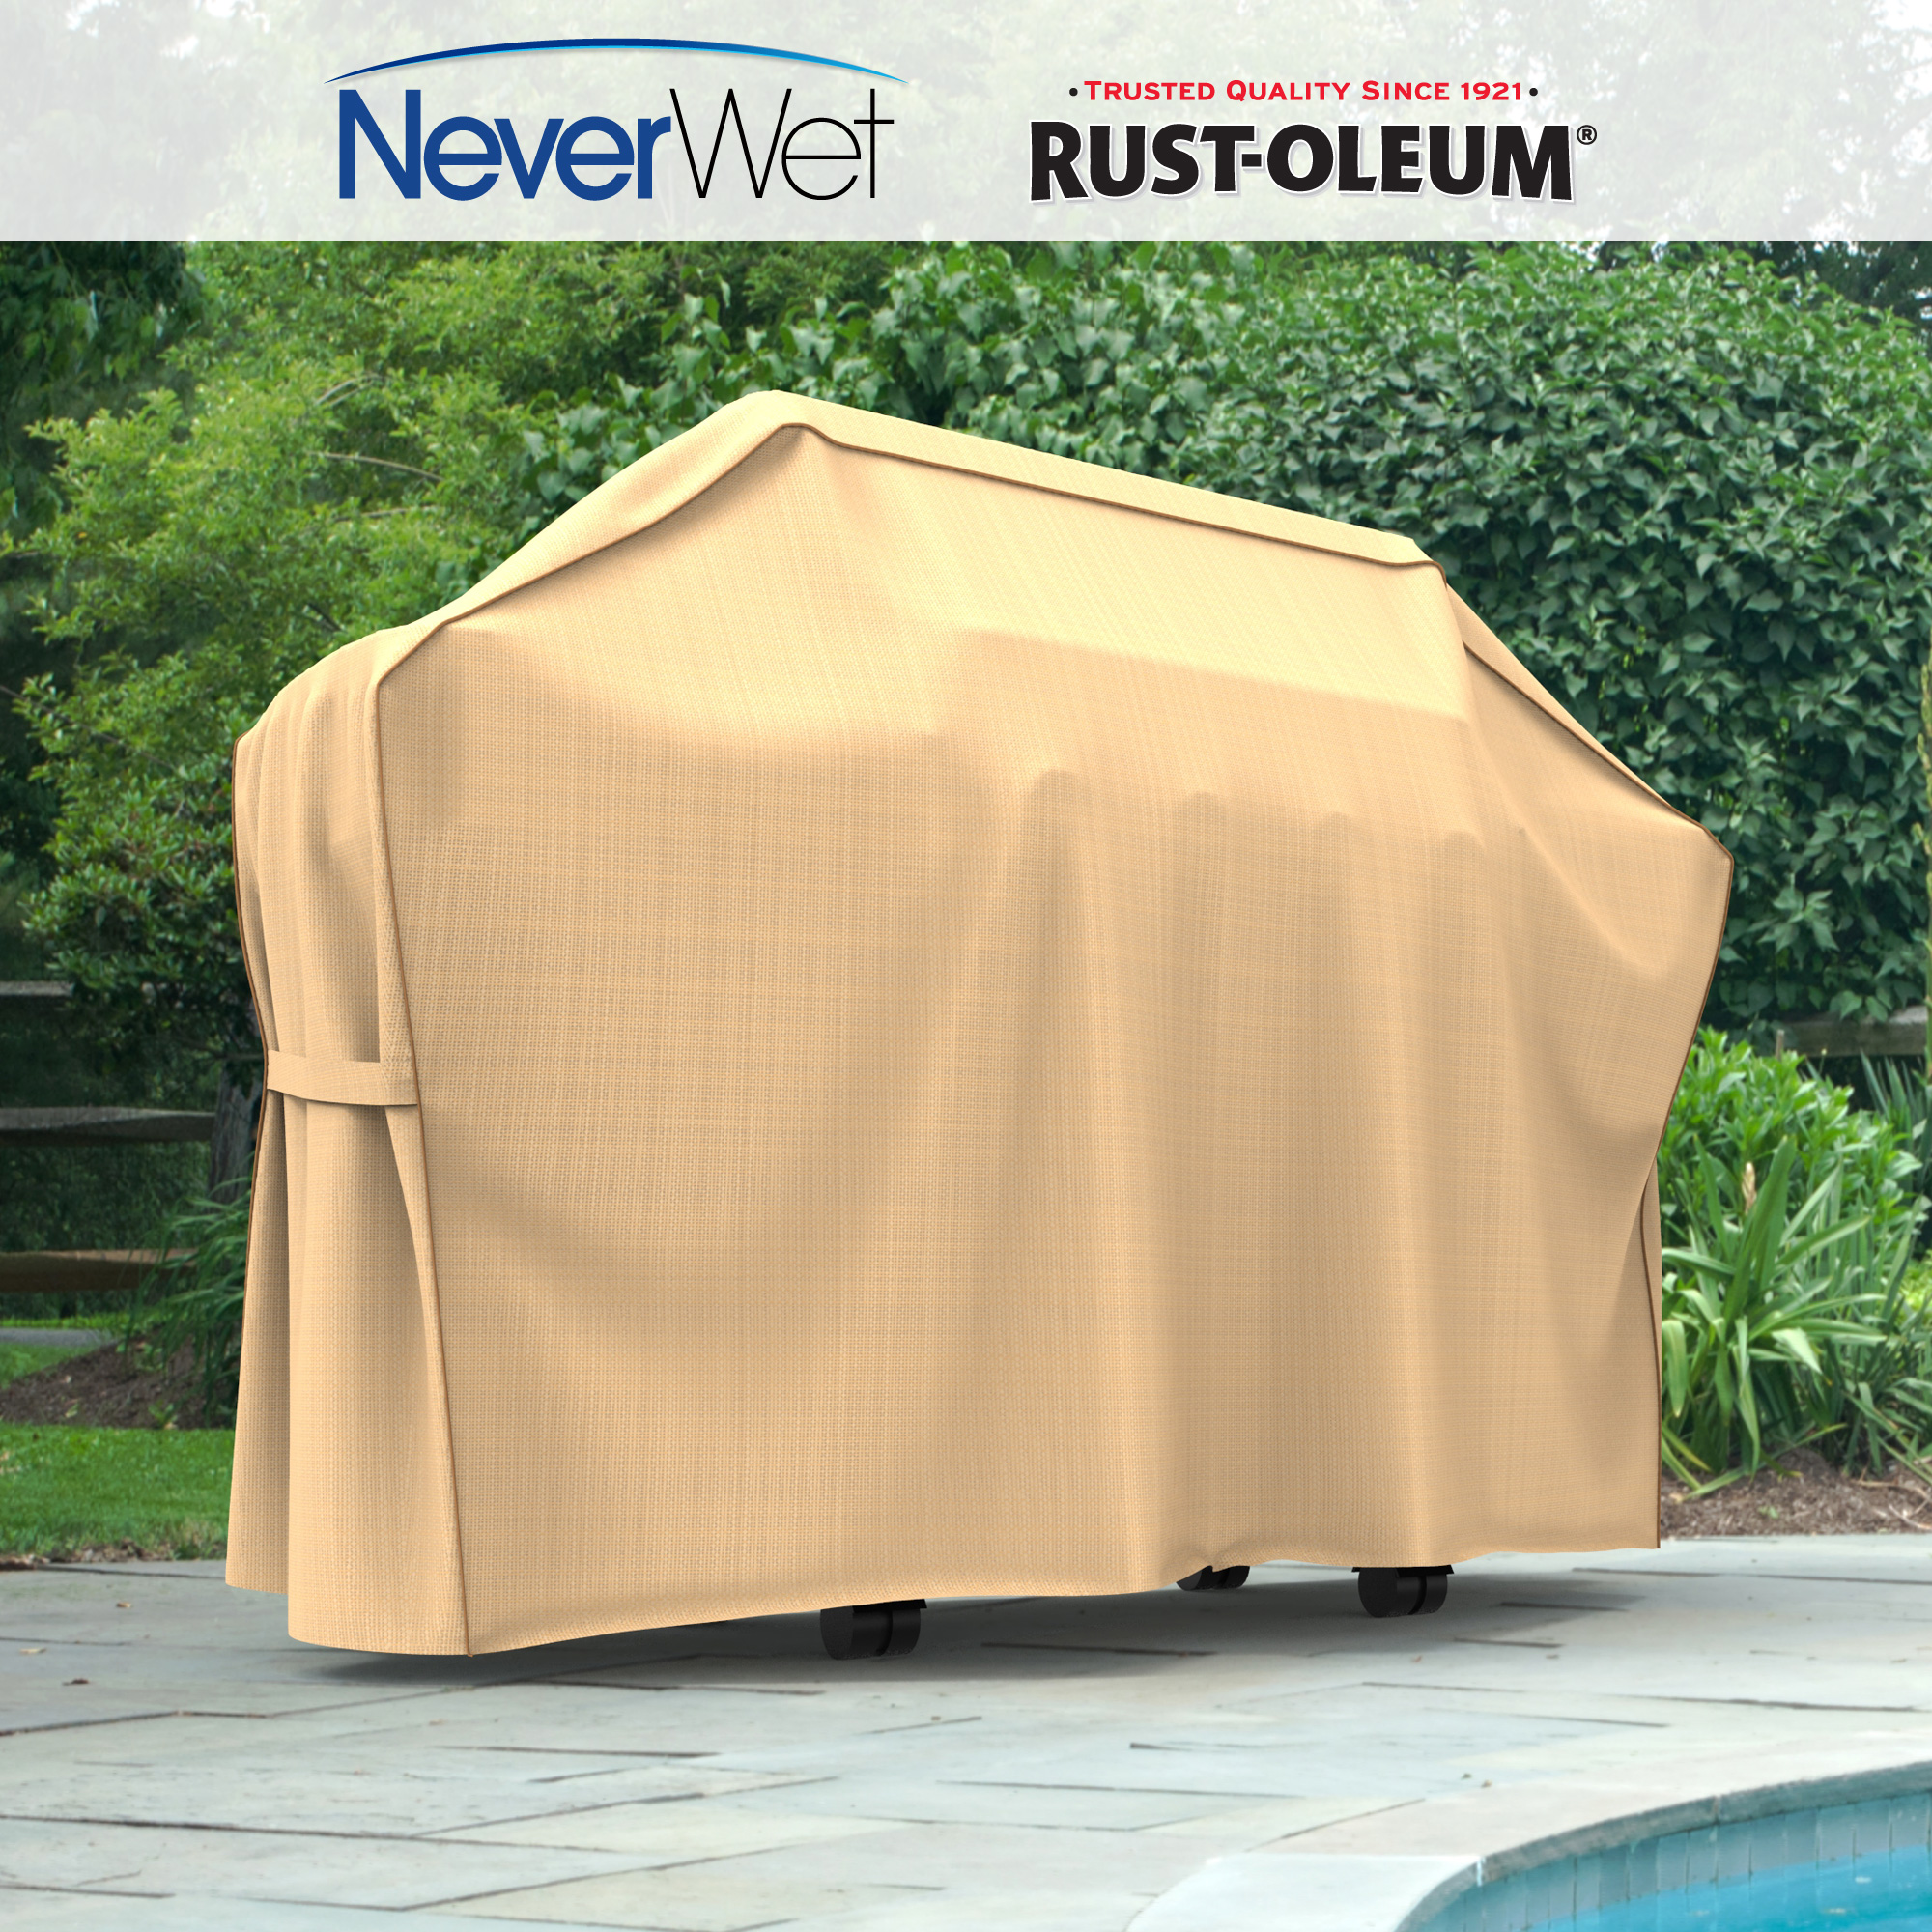 Rust-Oleum NeverWet Grill Covers | Waterproof | Breathable - Walmart.com & Rust-Oleum NeverWet Grill Covers | Waterproof | Breathable ...